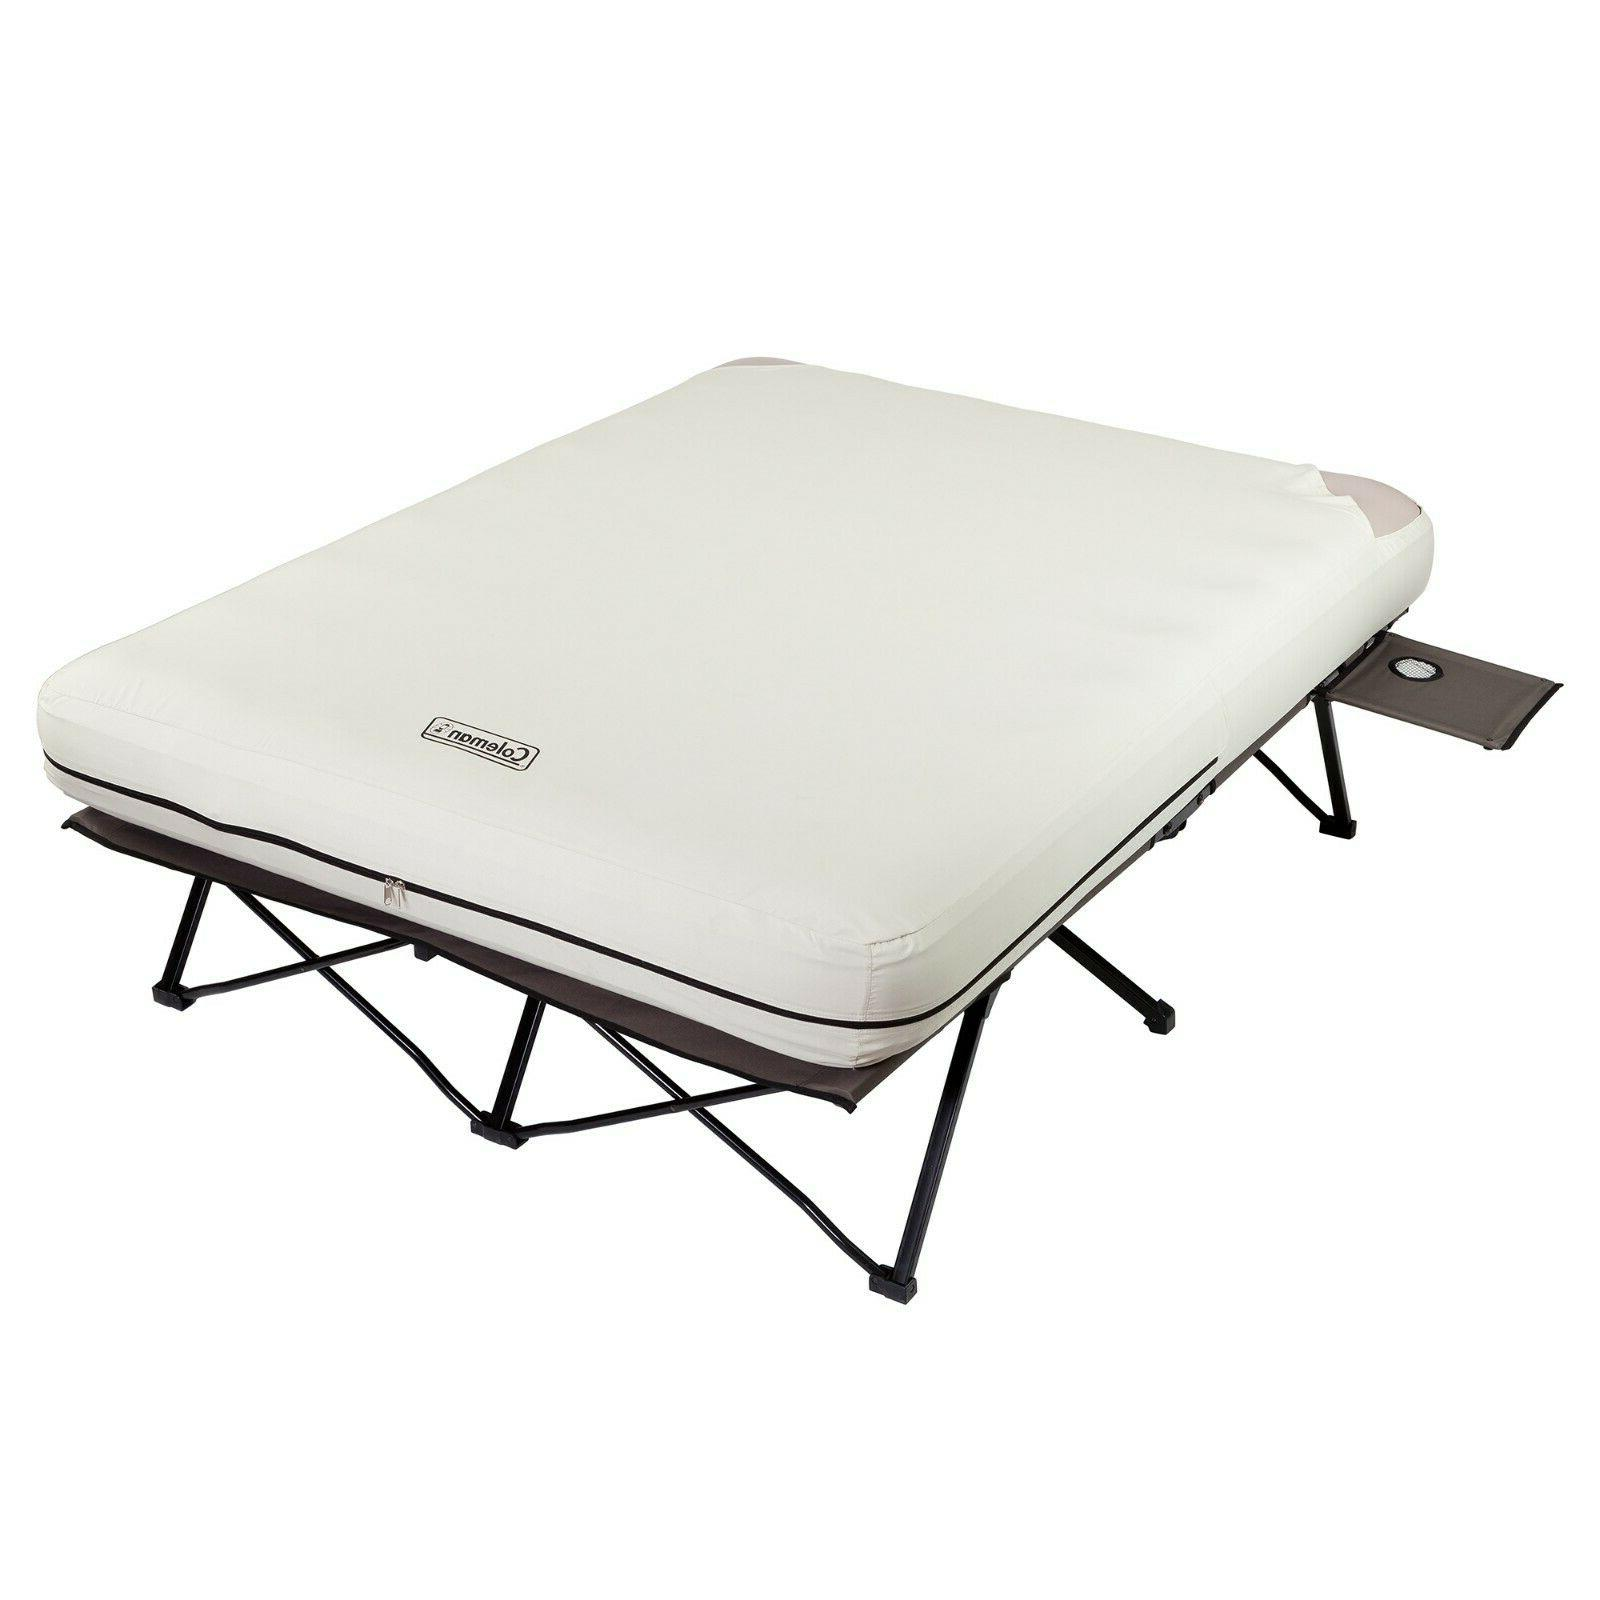 Camping Cot Air Mattress Bed Combo With Pump Side Tables Que